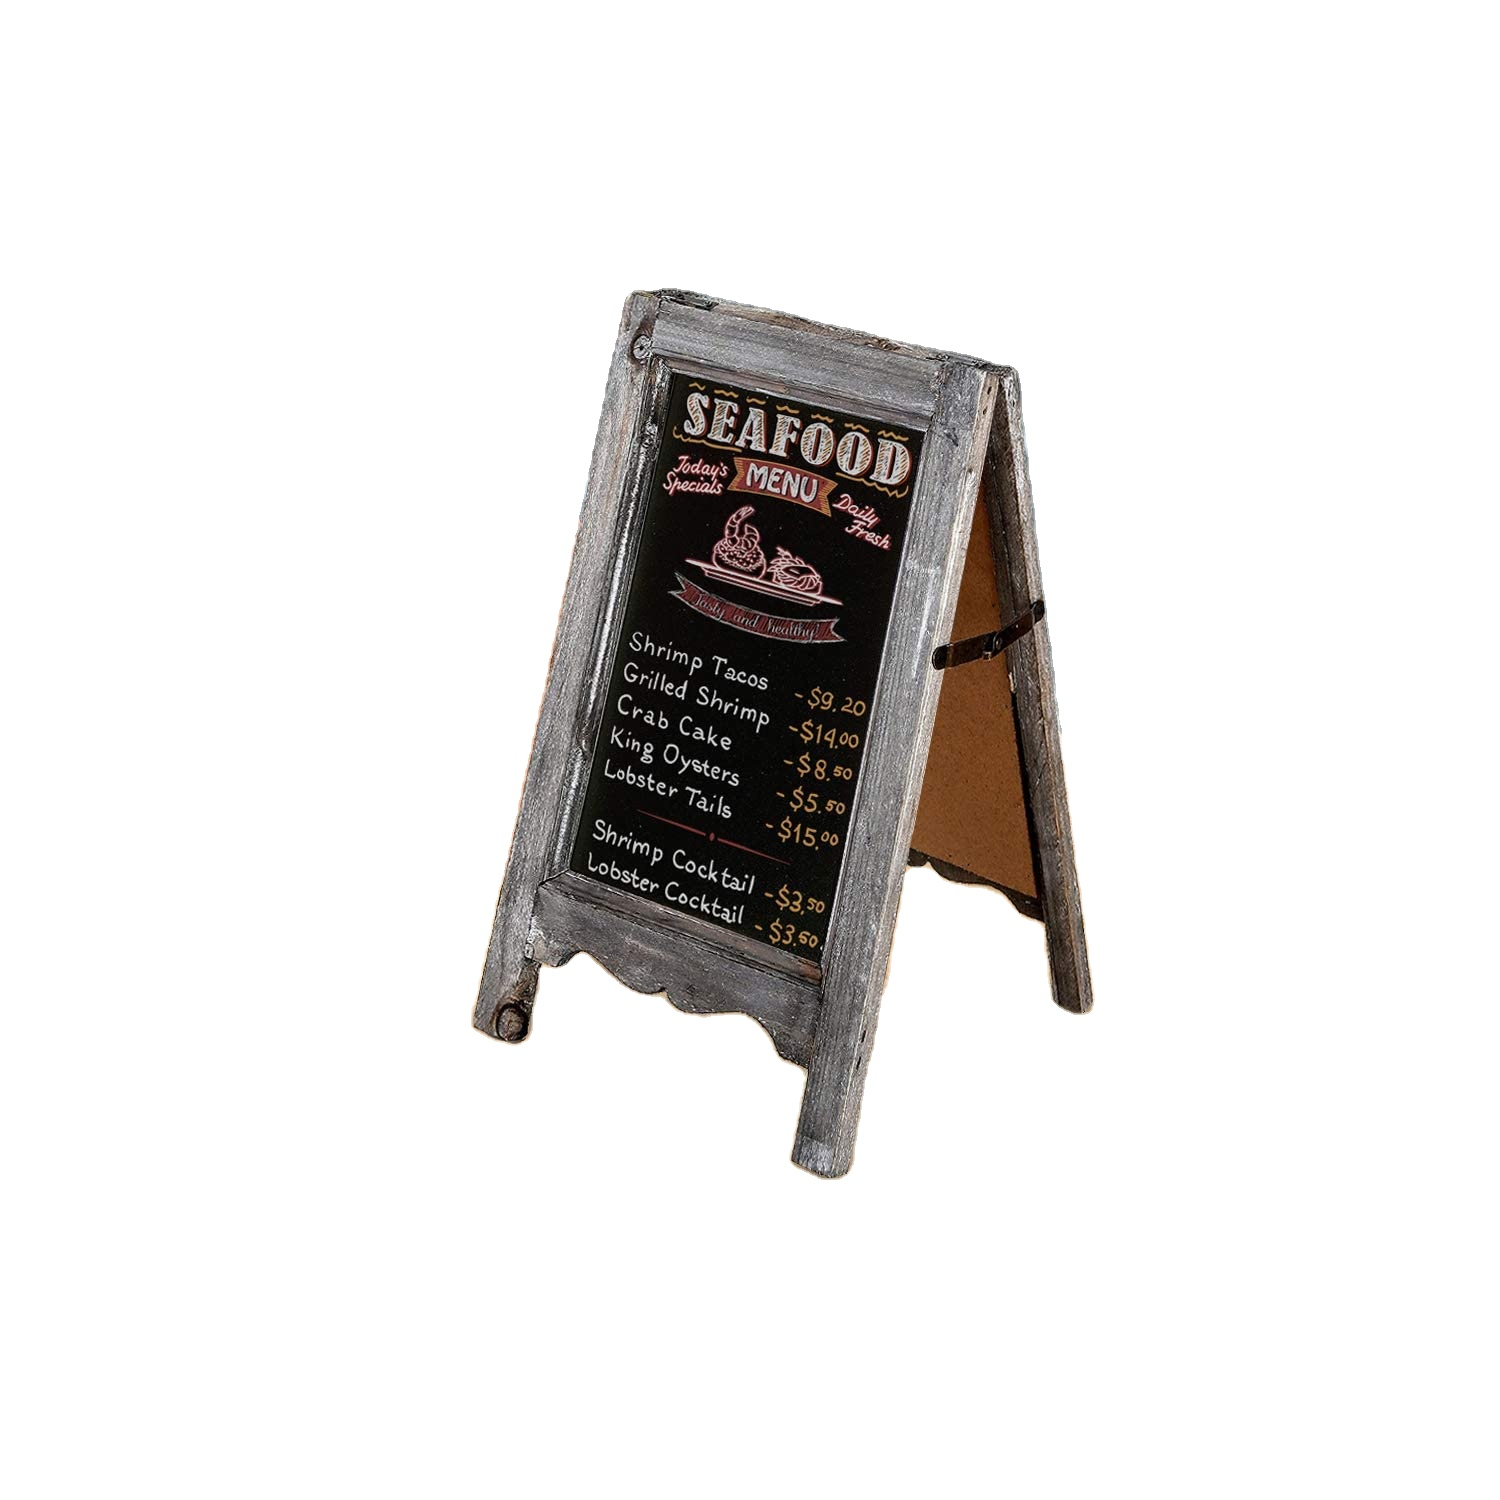 Small Wood A-Frame Double-Sided Chalkboard Sign, Brown Table Top Rustic Message Board - Yola WhiteBoard | szyola.net